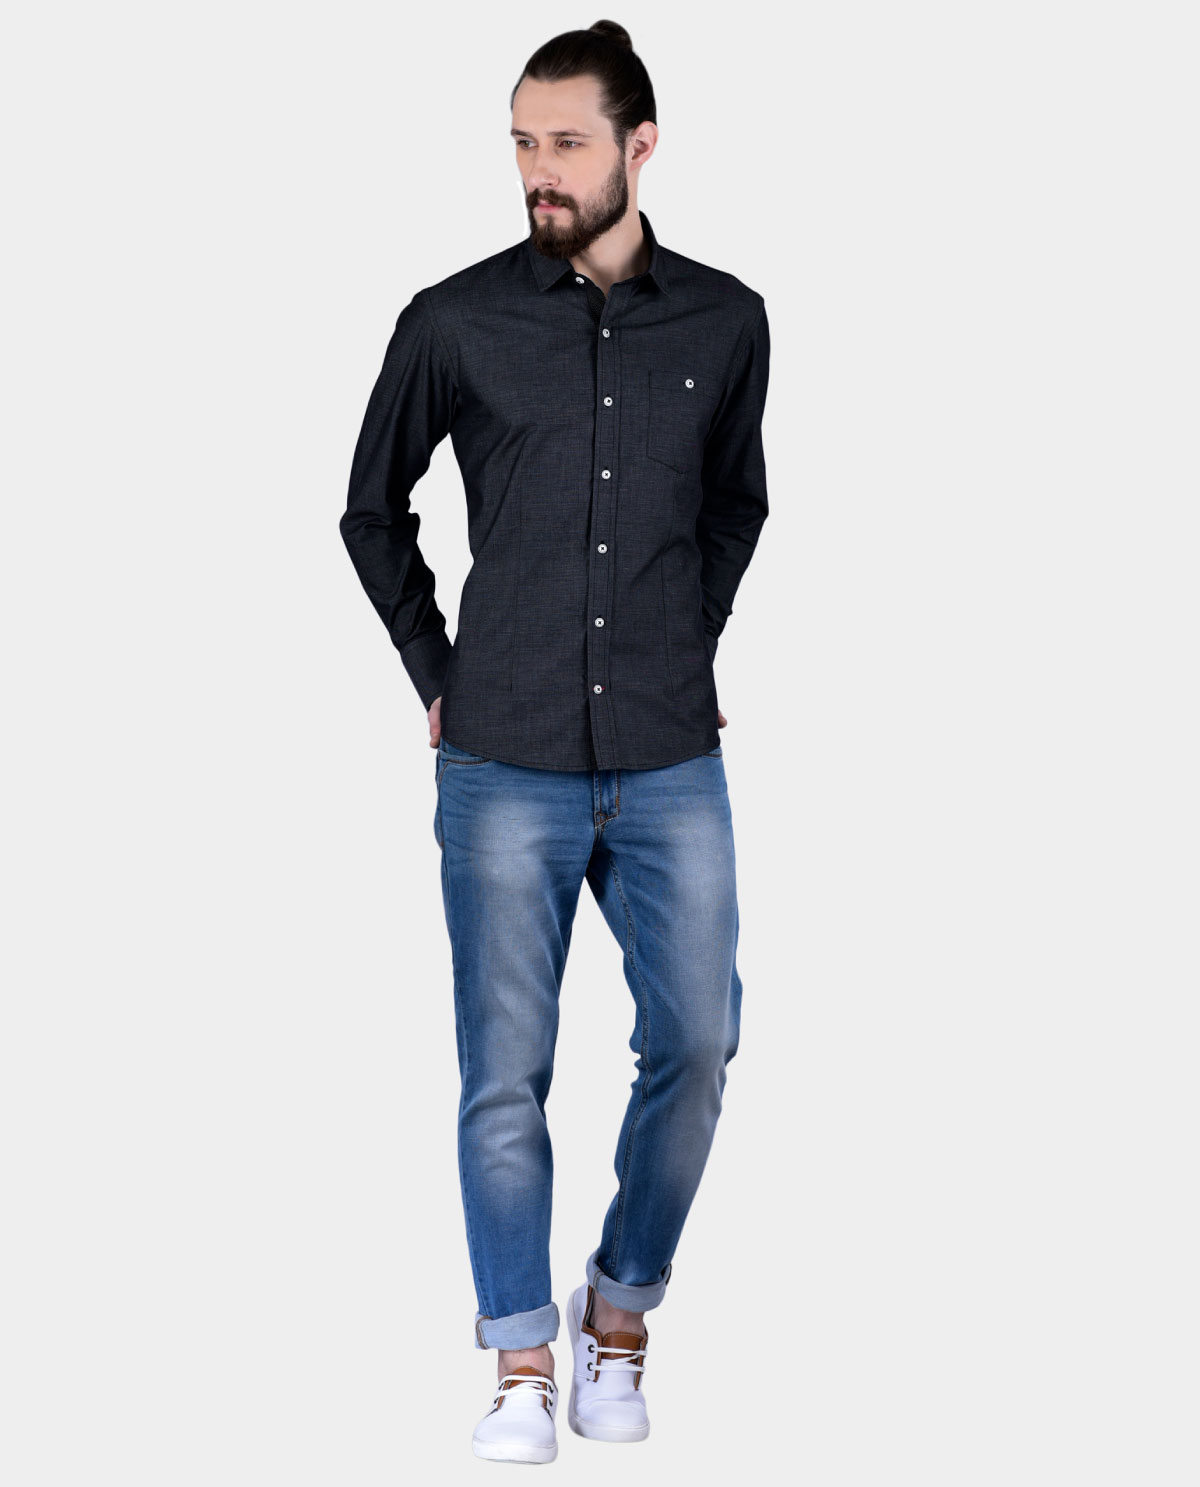 Black full sleeve shirt for men 1 kashvi design for Full sleeves t shirts for men